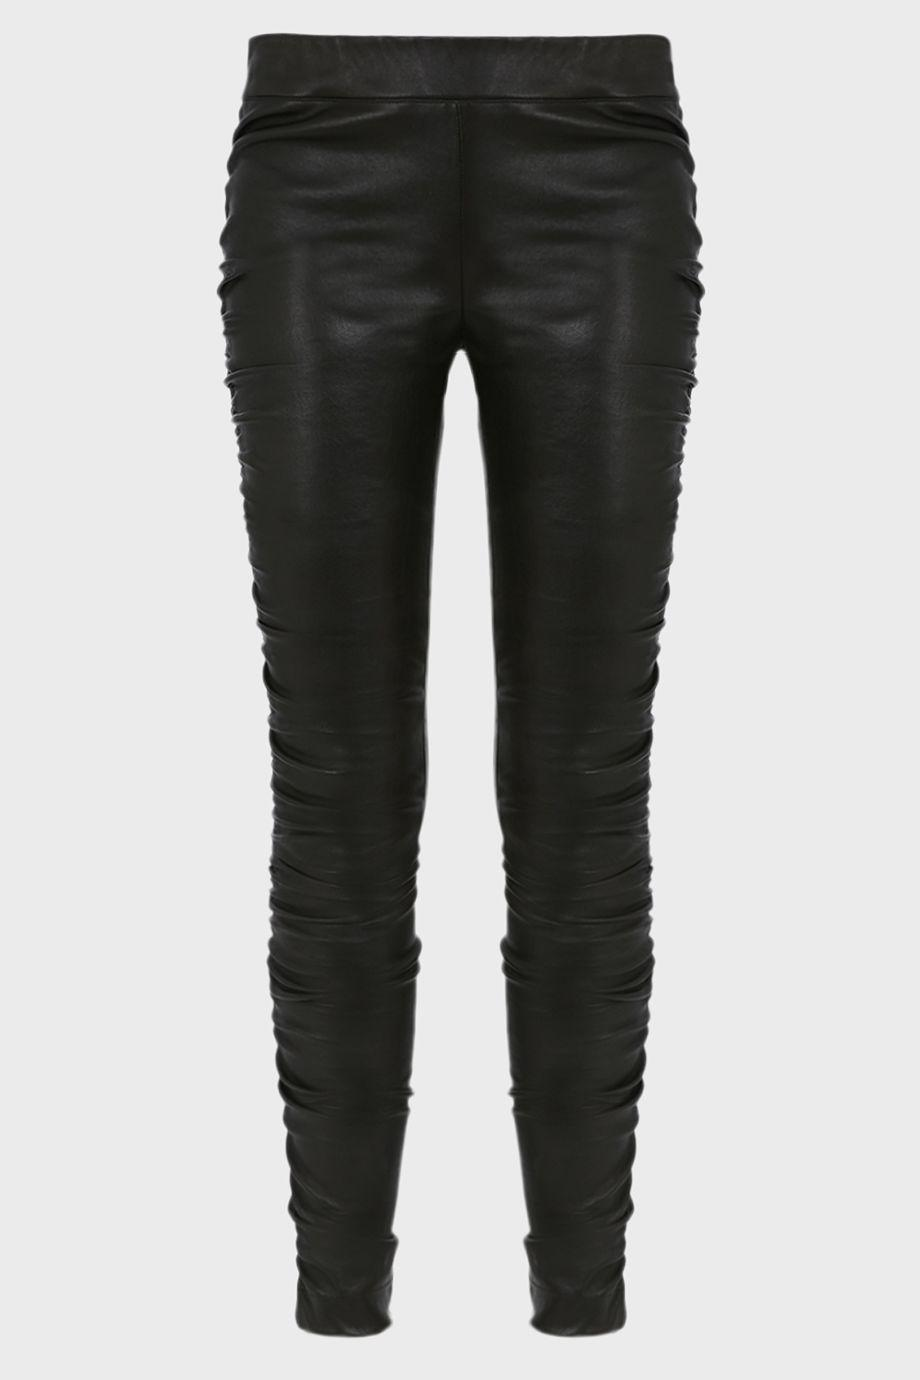 885d328bd5259c Gallery. Previously sold at: Boutique1 · Women's Leather Leggings